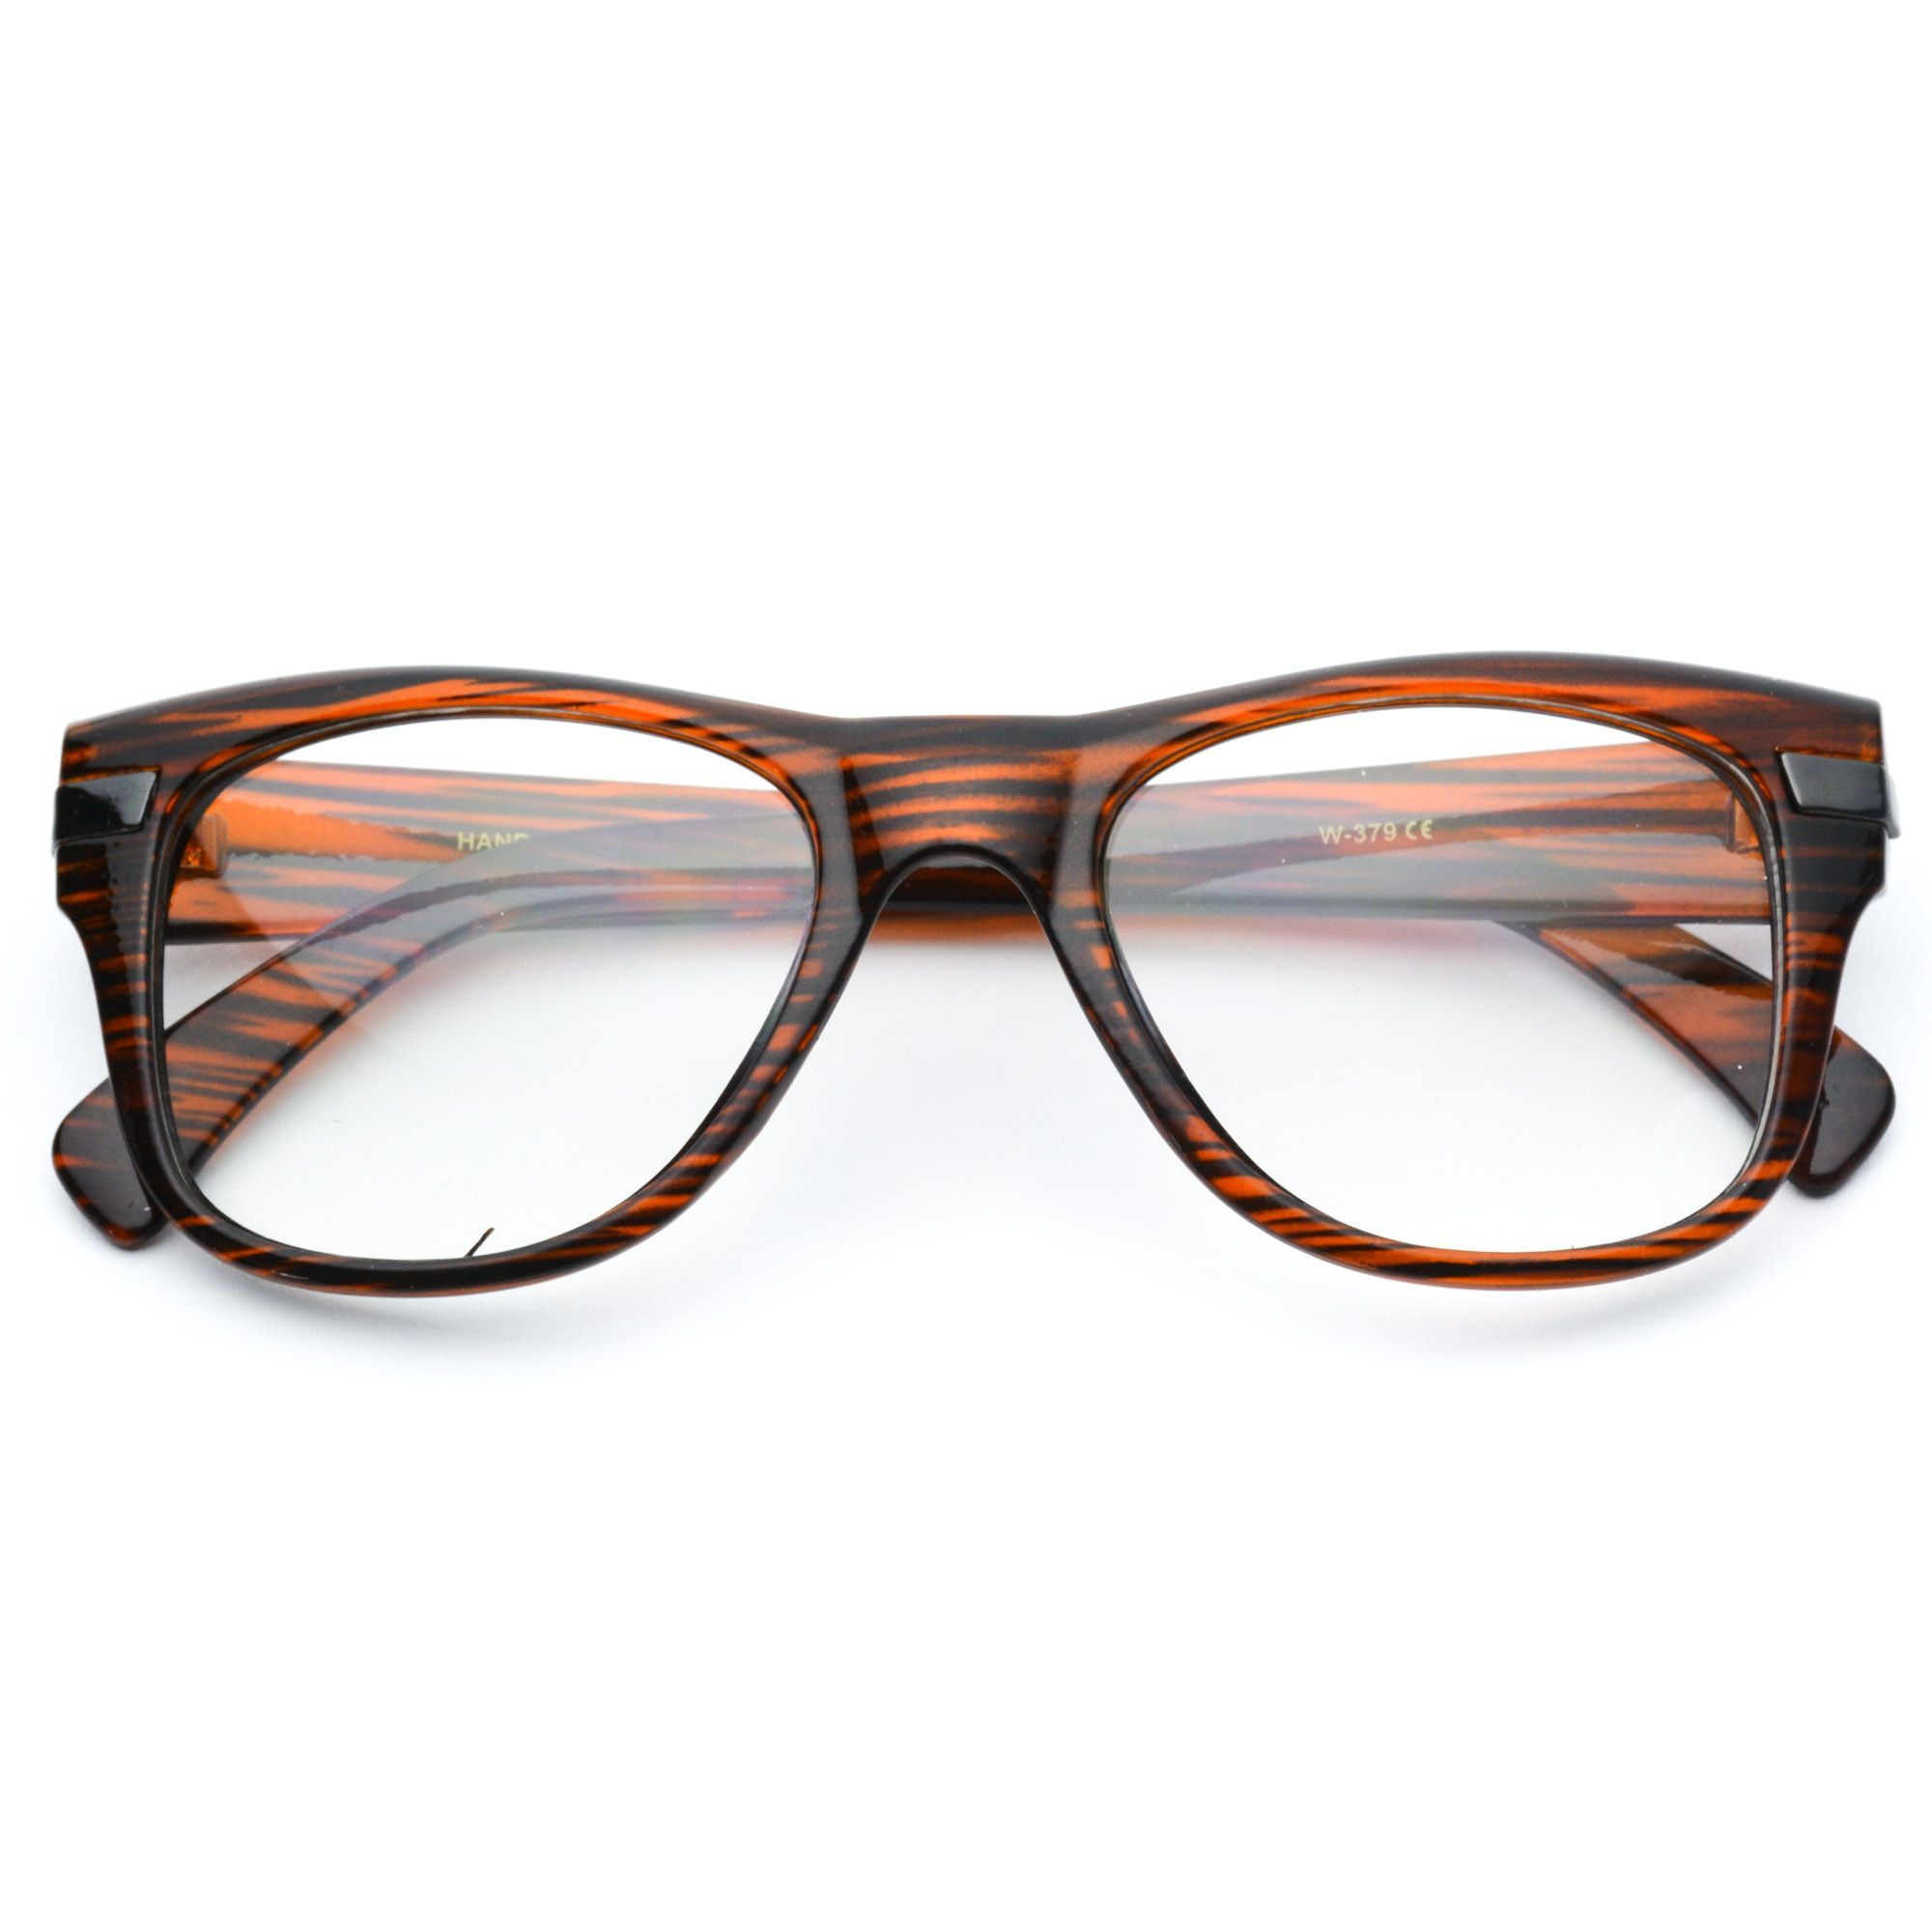 Kadin Thick Frame Rectangular Glasses | Products | Pinterest | Products